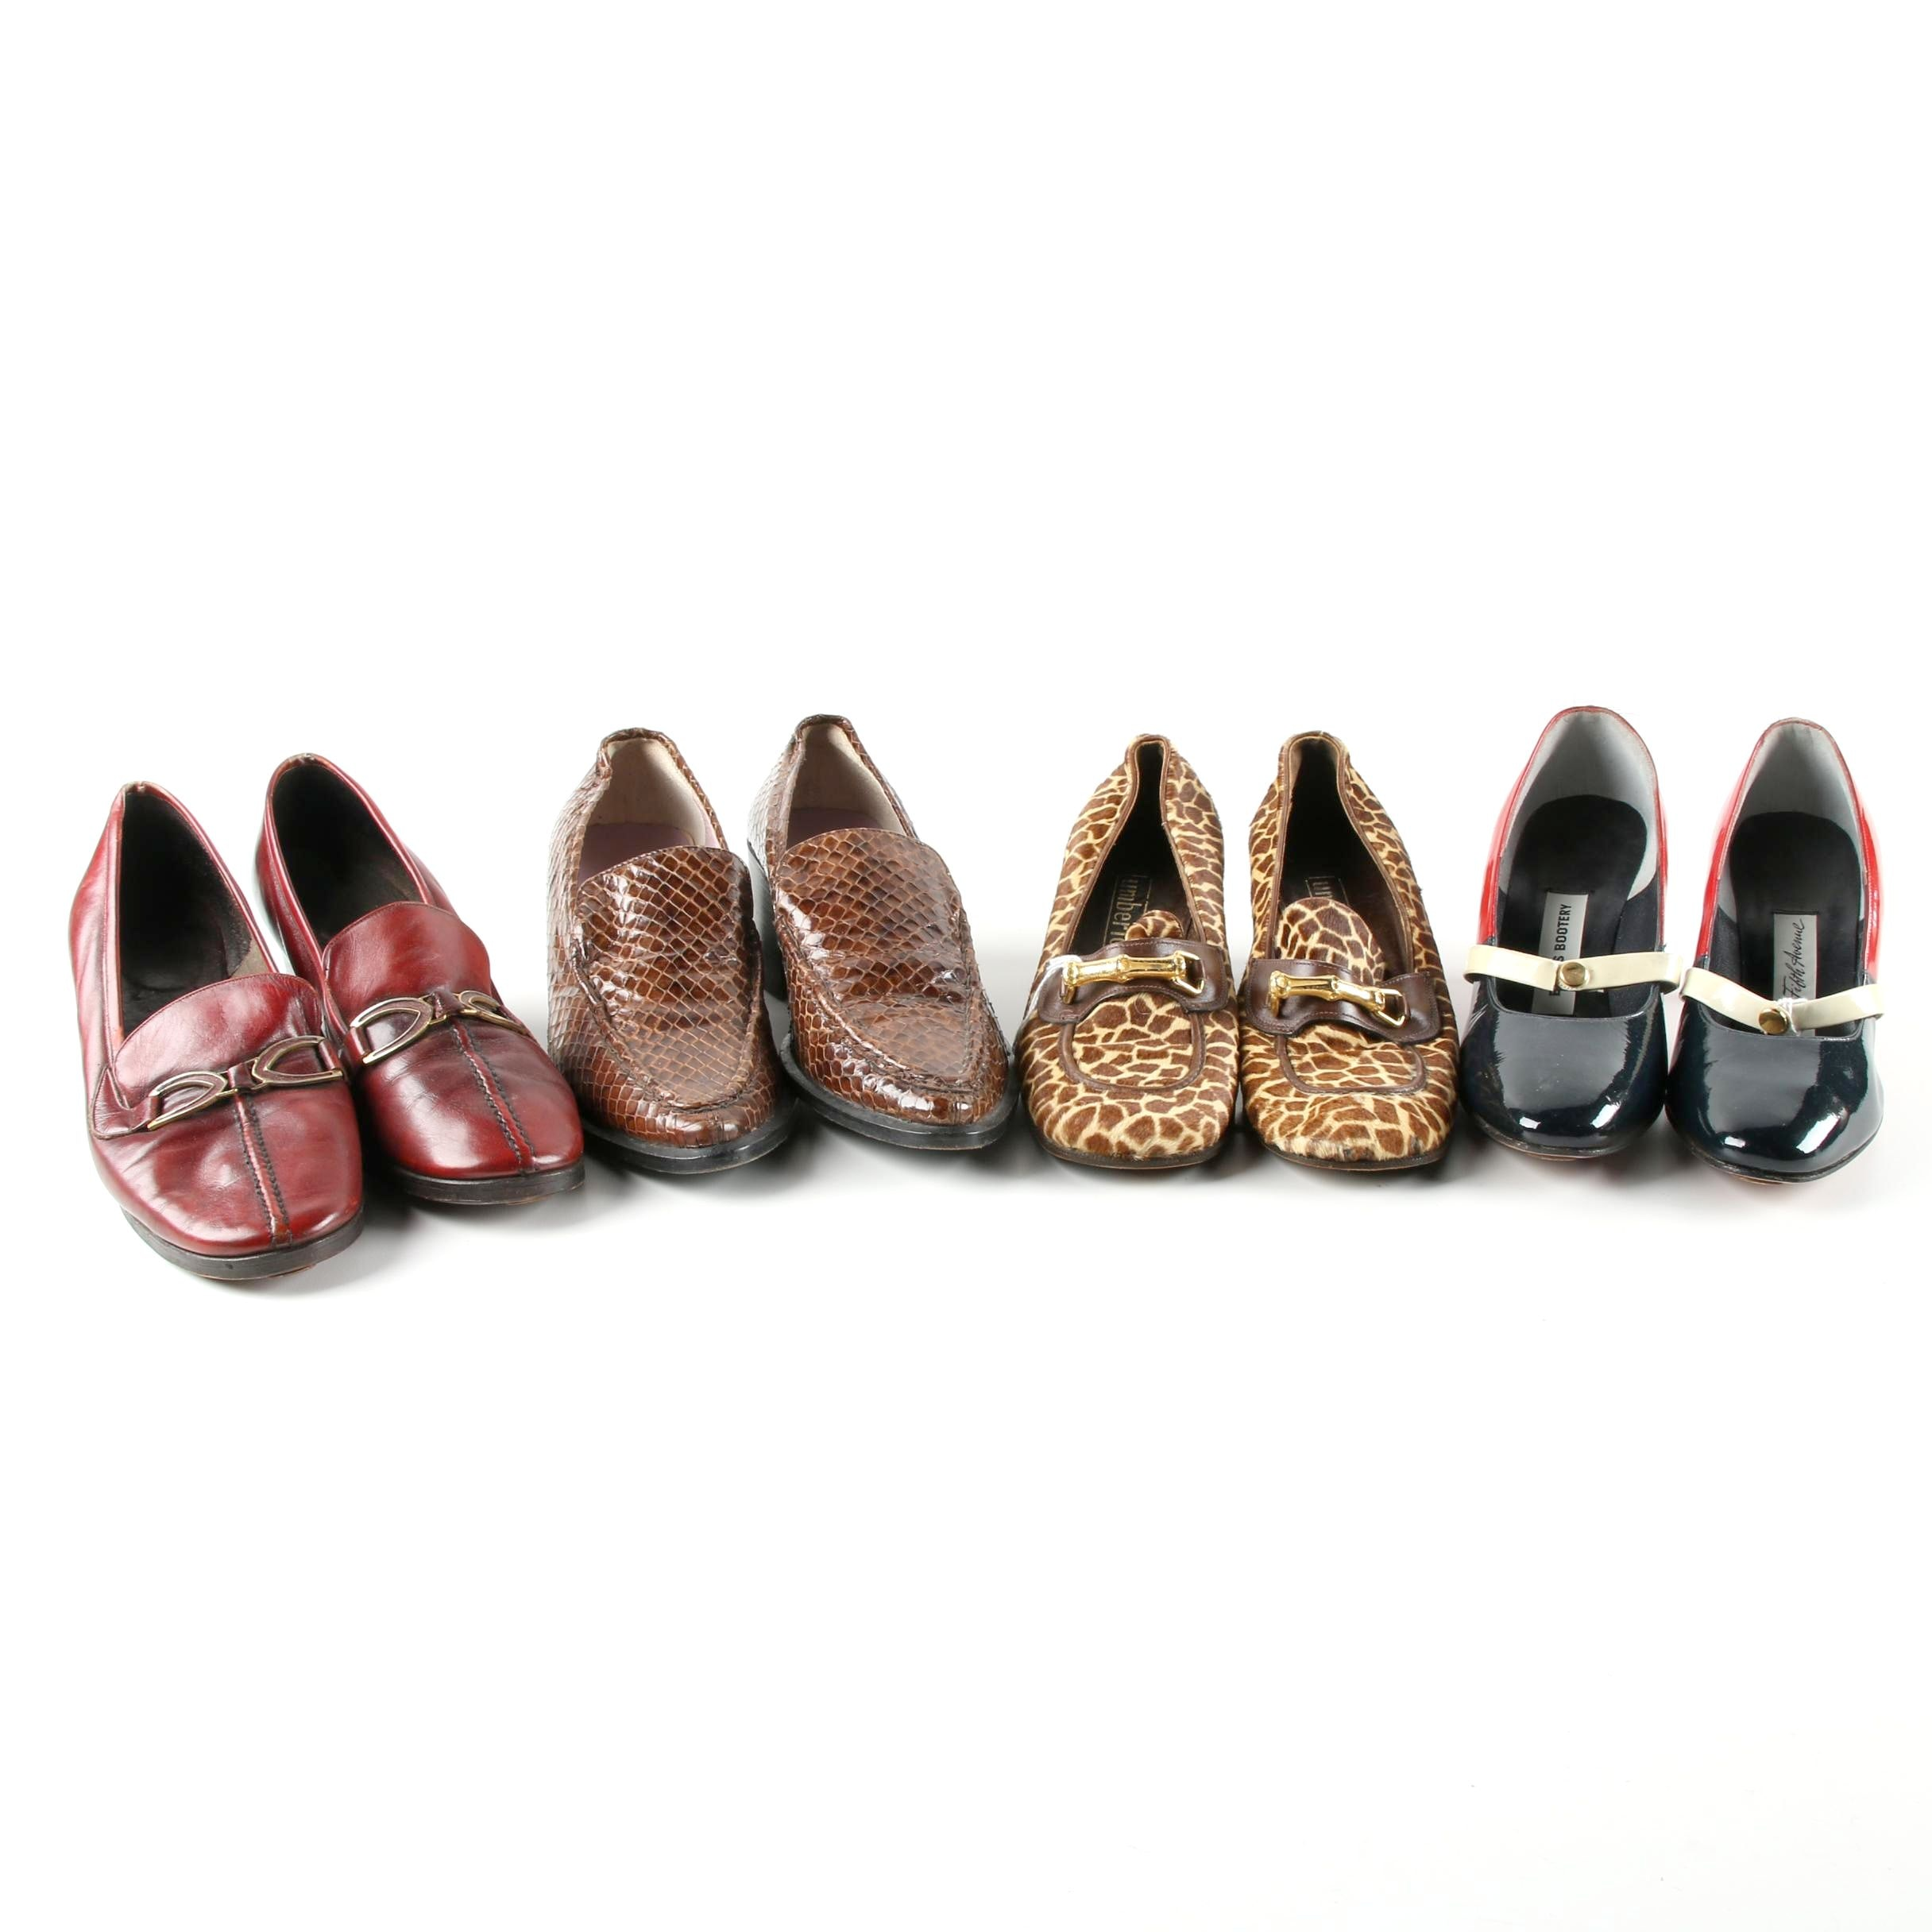 Circa 1960s Vintage Dyed Snakeskin, Pony Hair and Leather Pumps